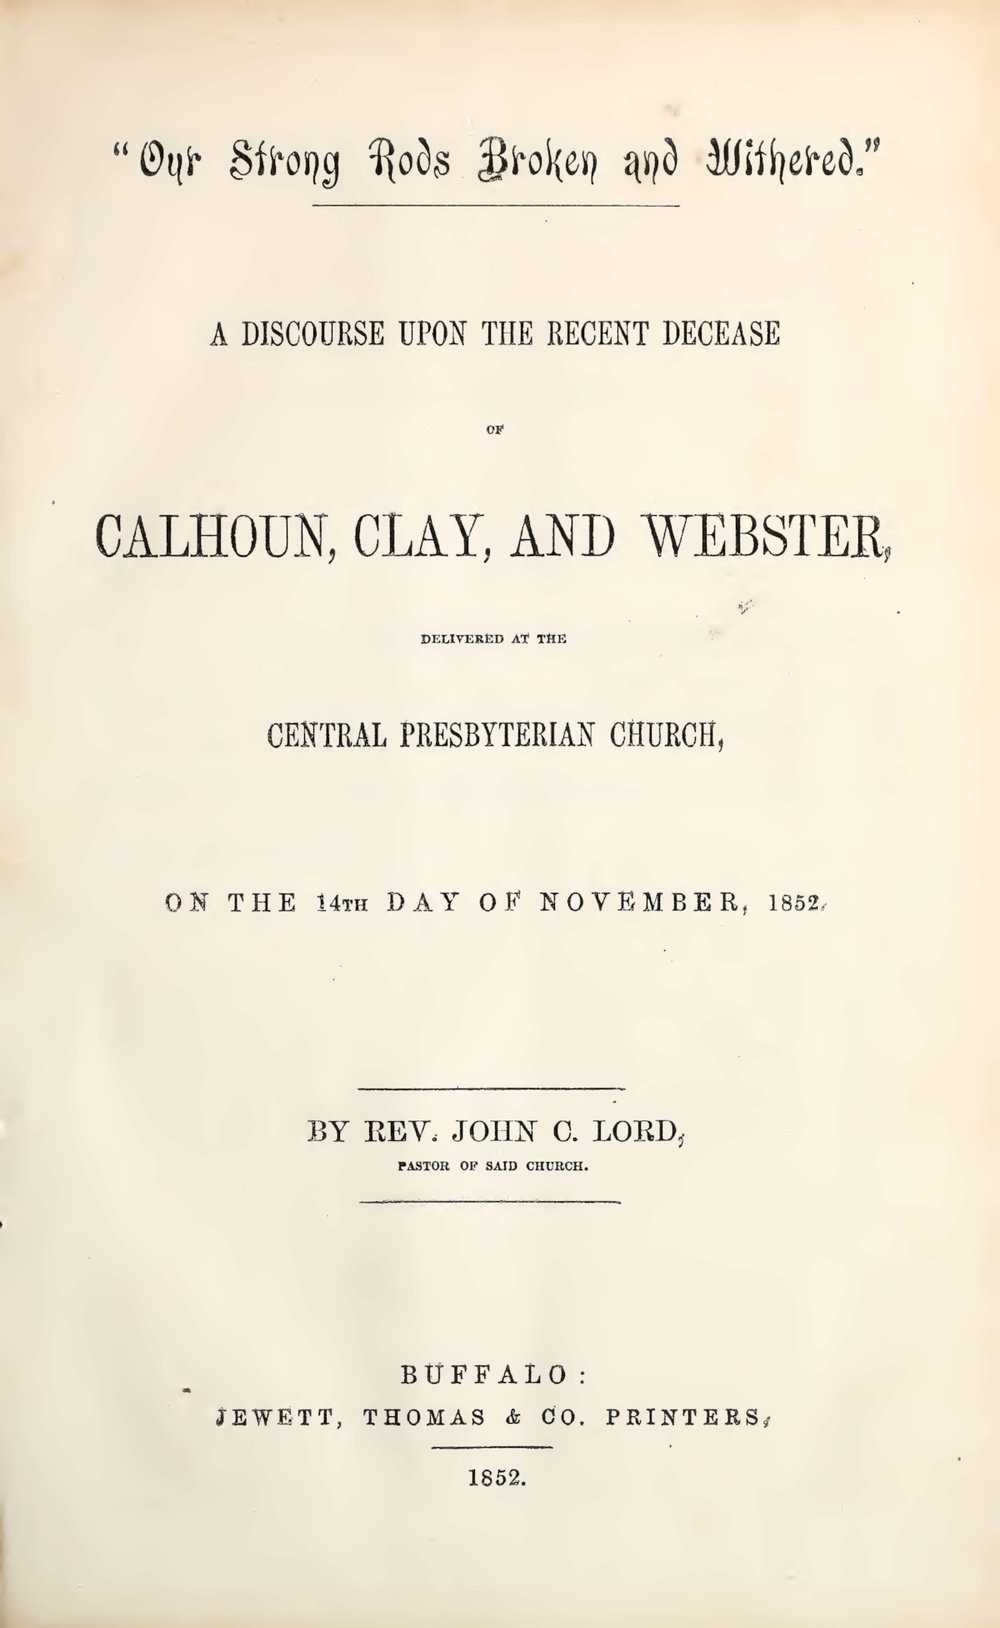 Lord, John Chase, Our Strong Rods Broken and Withered Title Page.jpg